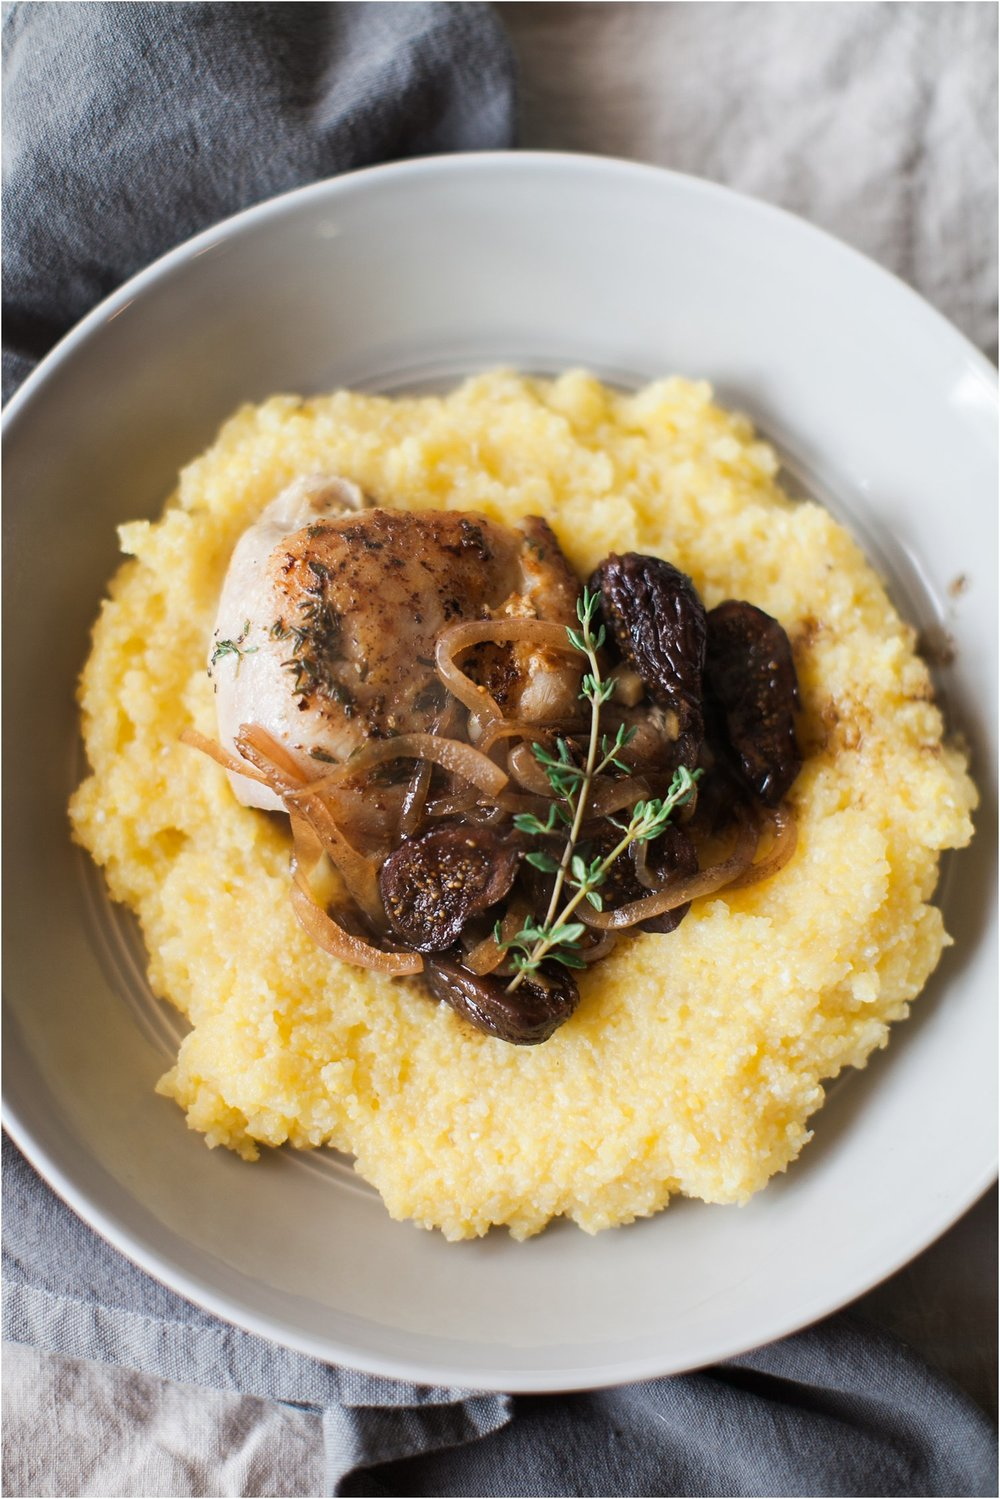 Herbed Chicken Thighs & Balsamic Fig Sauce with Polenta | Feast & Dwell